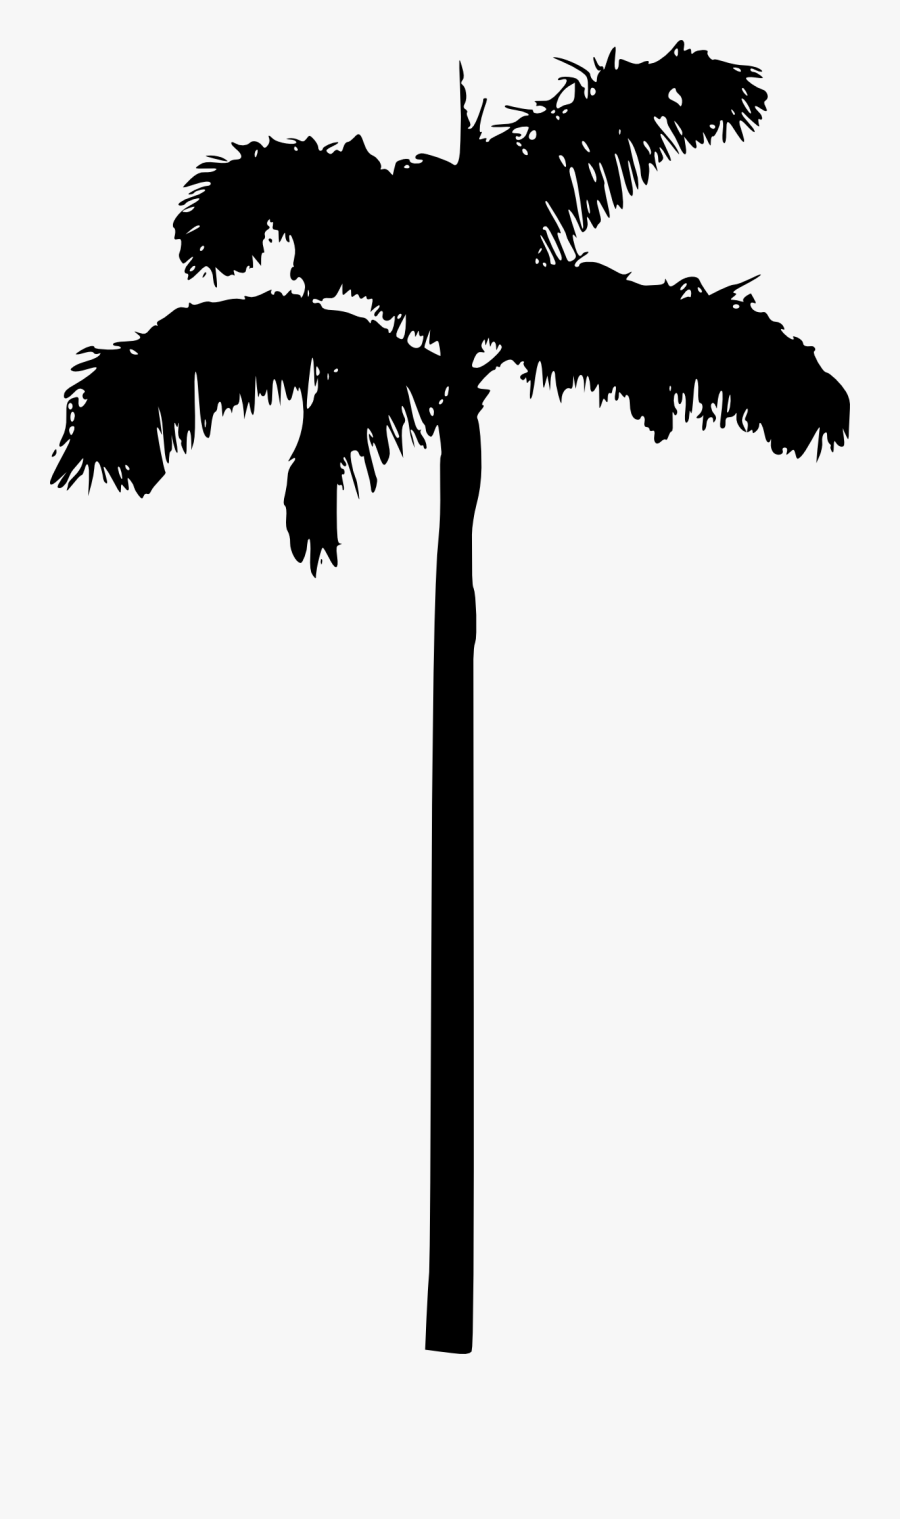 Palm Tree Silhouette Clipart No Background - Palm Tree Silhouette White Background, Transparent Clipart